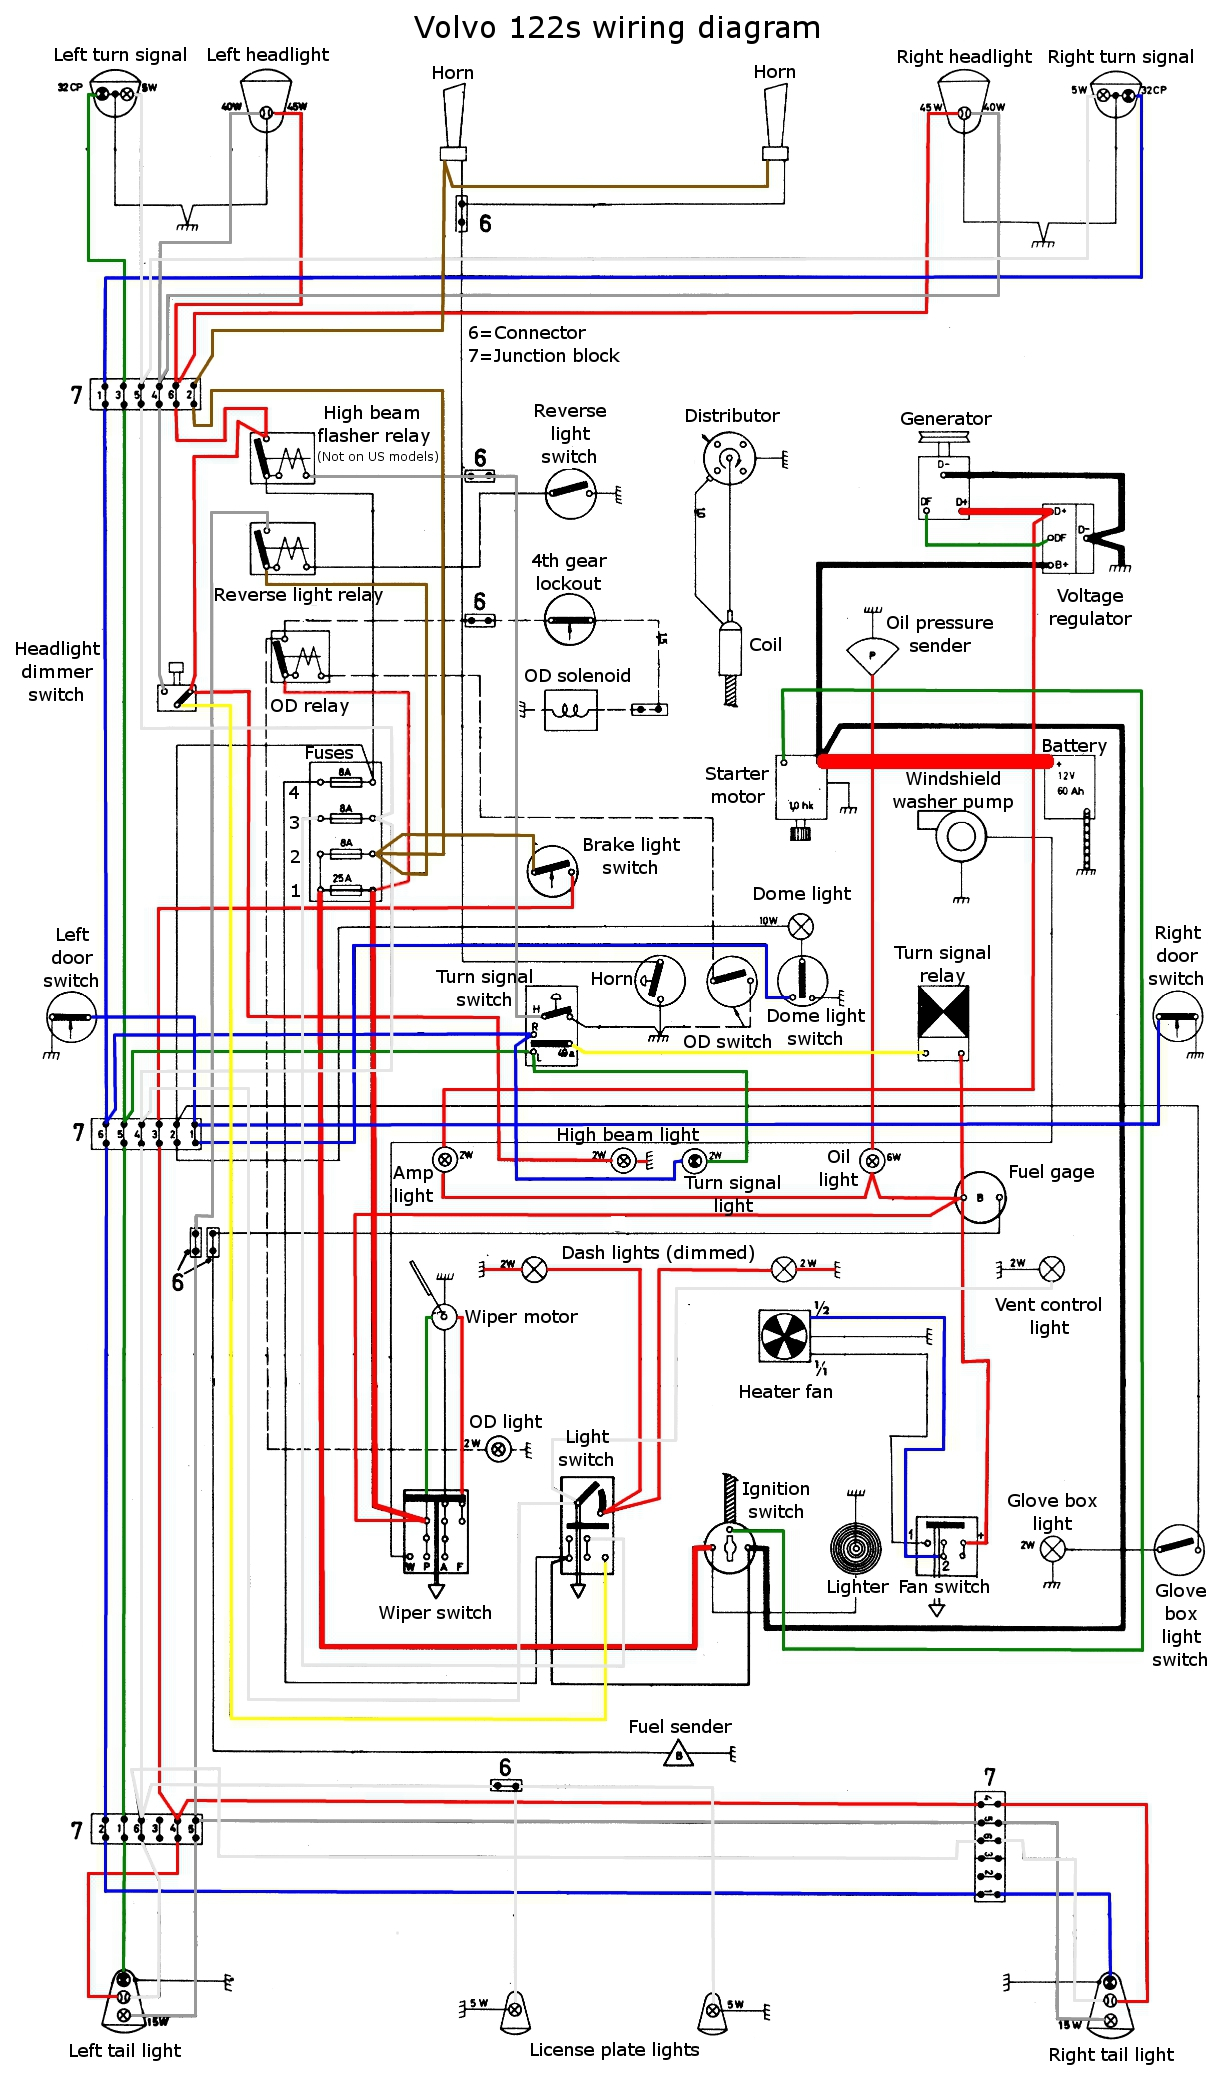 Volvo S40 Audio Wiring Diagram : Iec motor starter wiring diagram free engine image